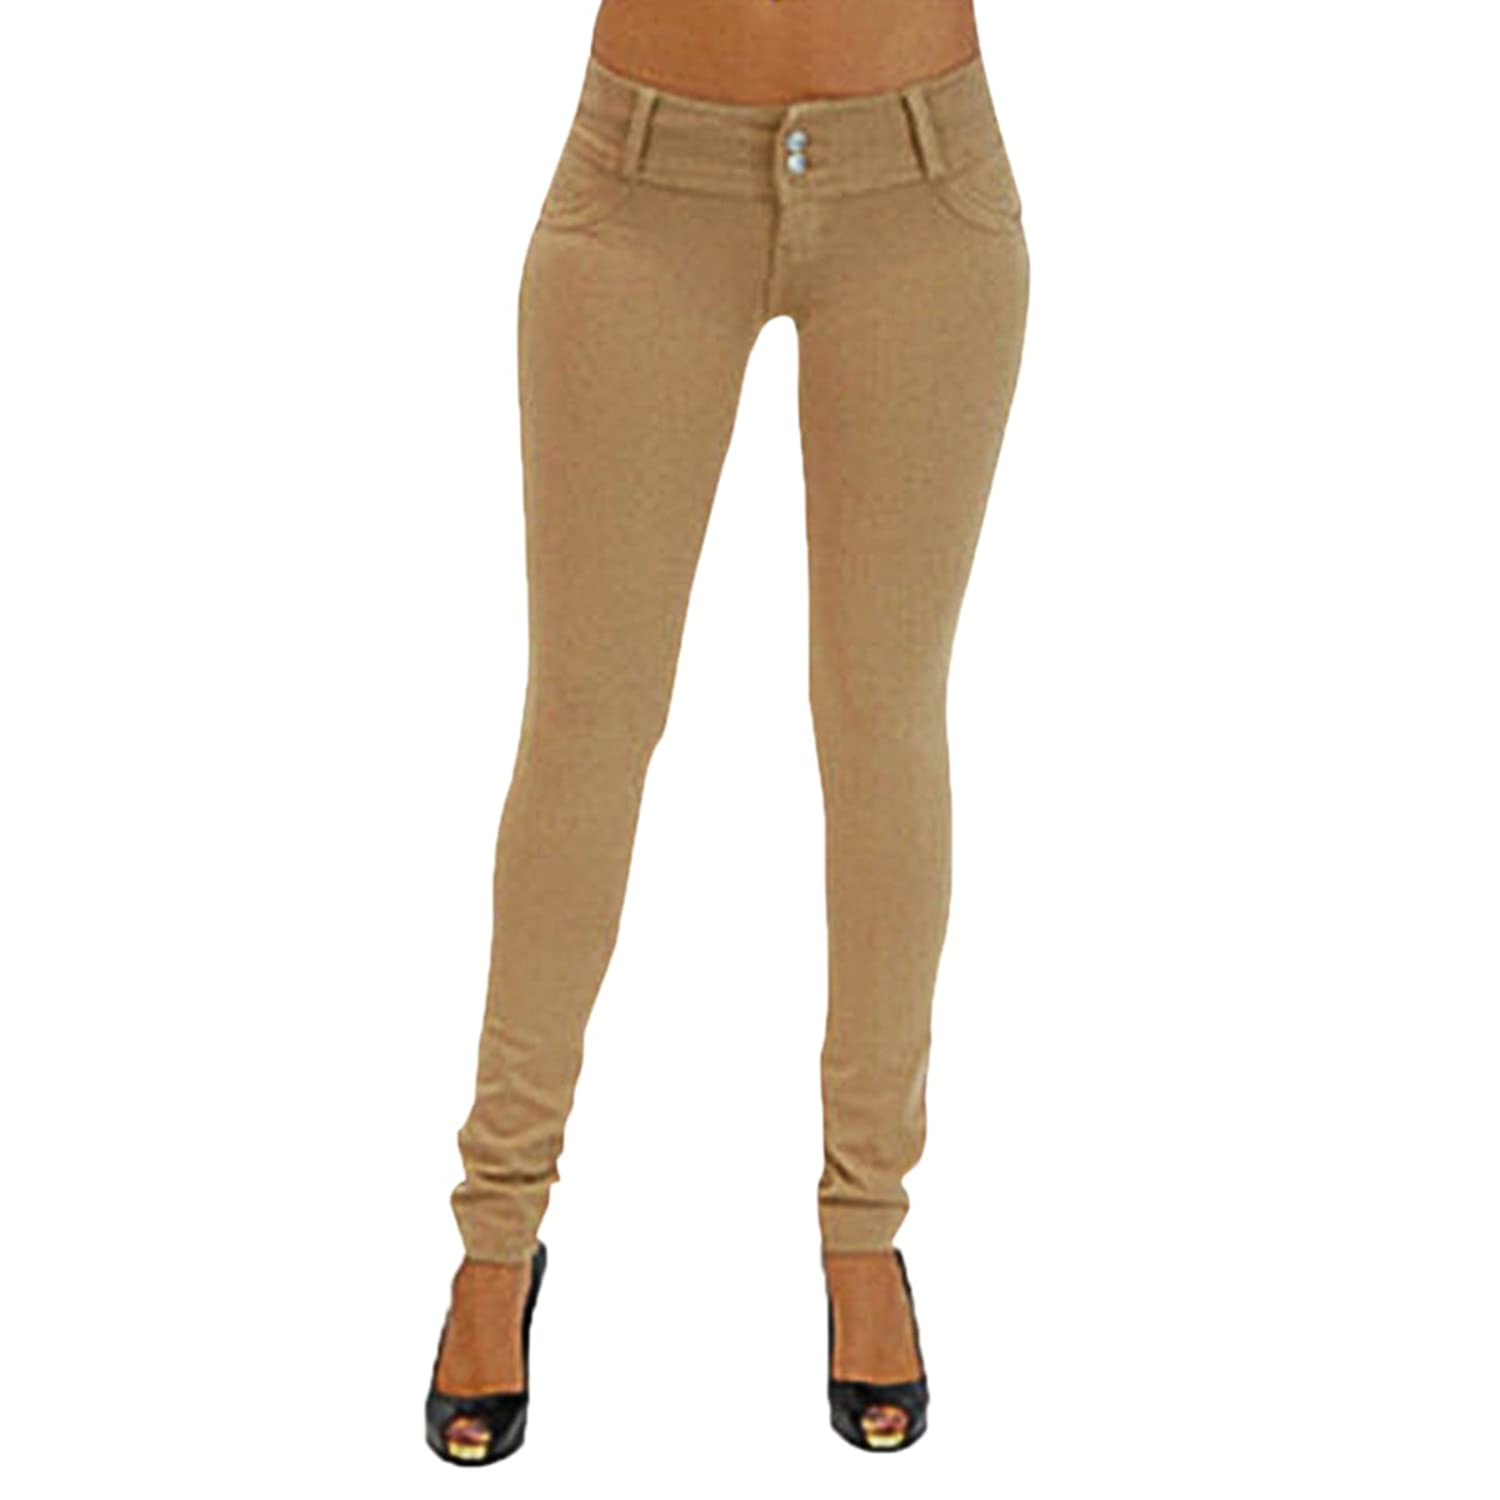 Cekaso Women's Long Stretch Skinny Cotton Pencil Solid Butt Lifting Jeans Pants